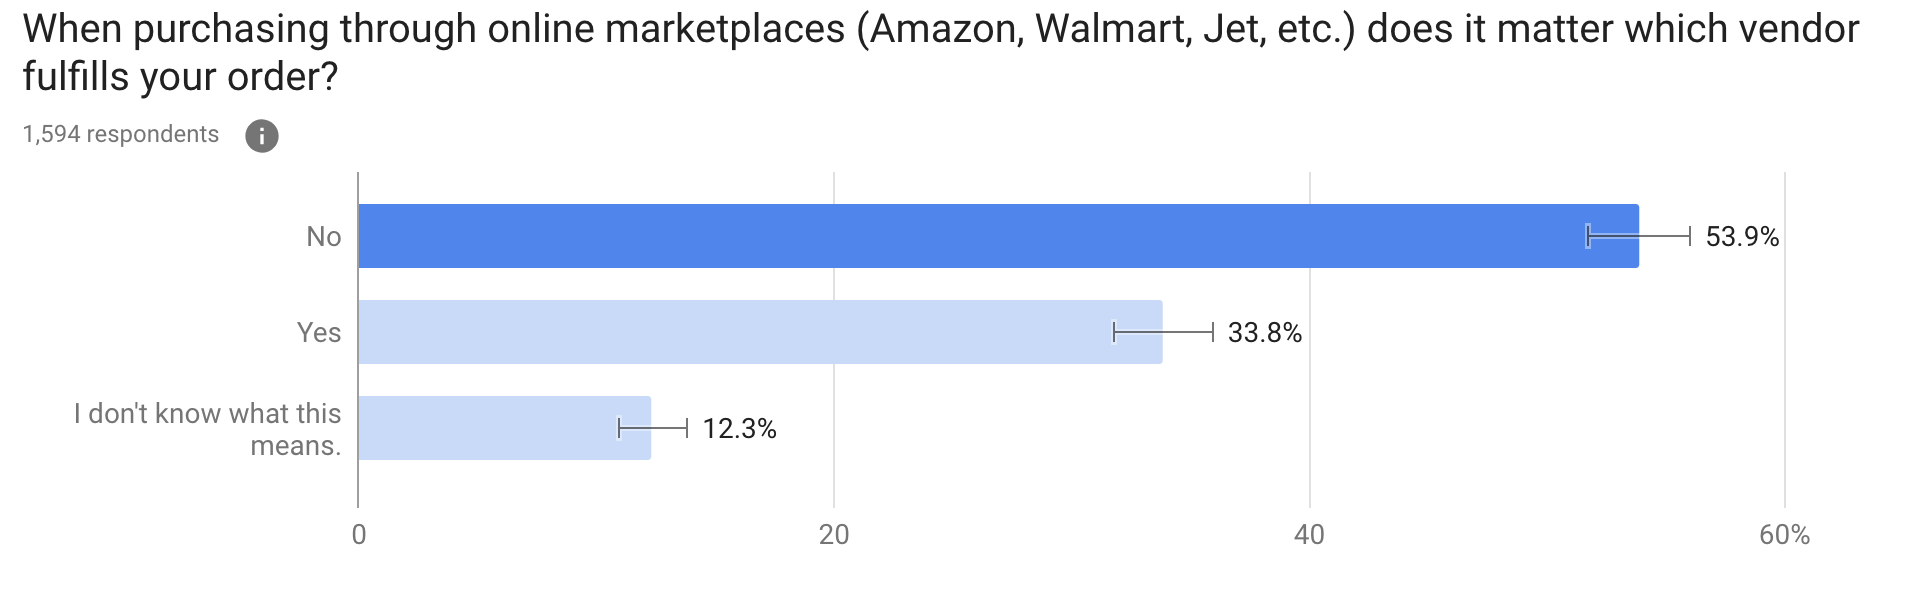 When purchasing through online marketplaces (Amazon, Walmart, Jet, etc.) does it matter which vendor fulfills your order?